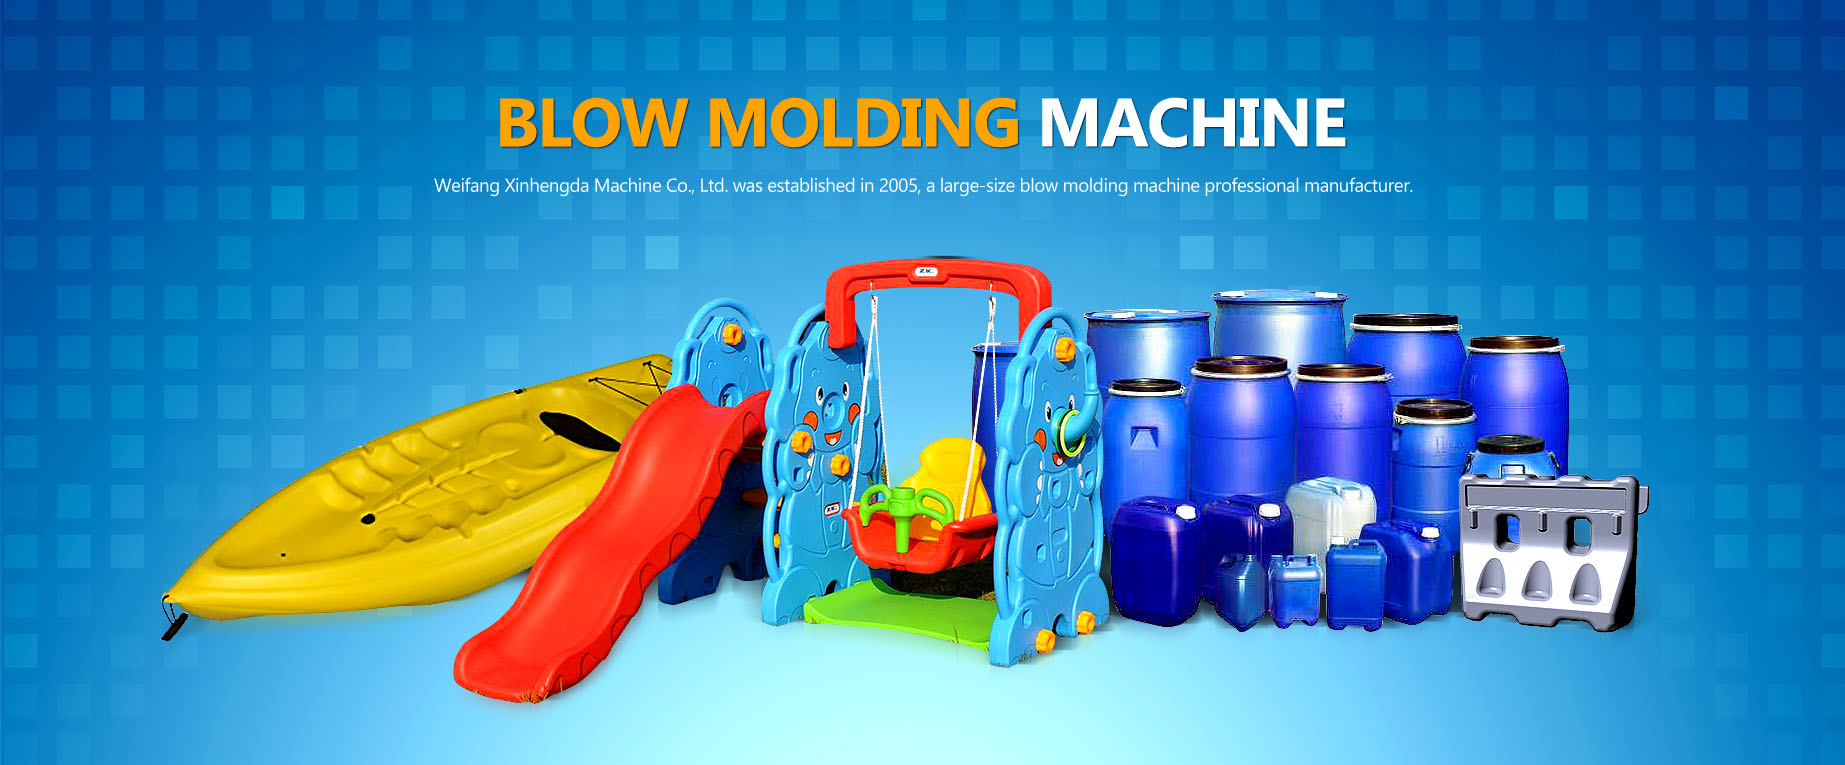 Pumutok Moulding Machine